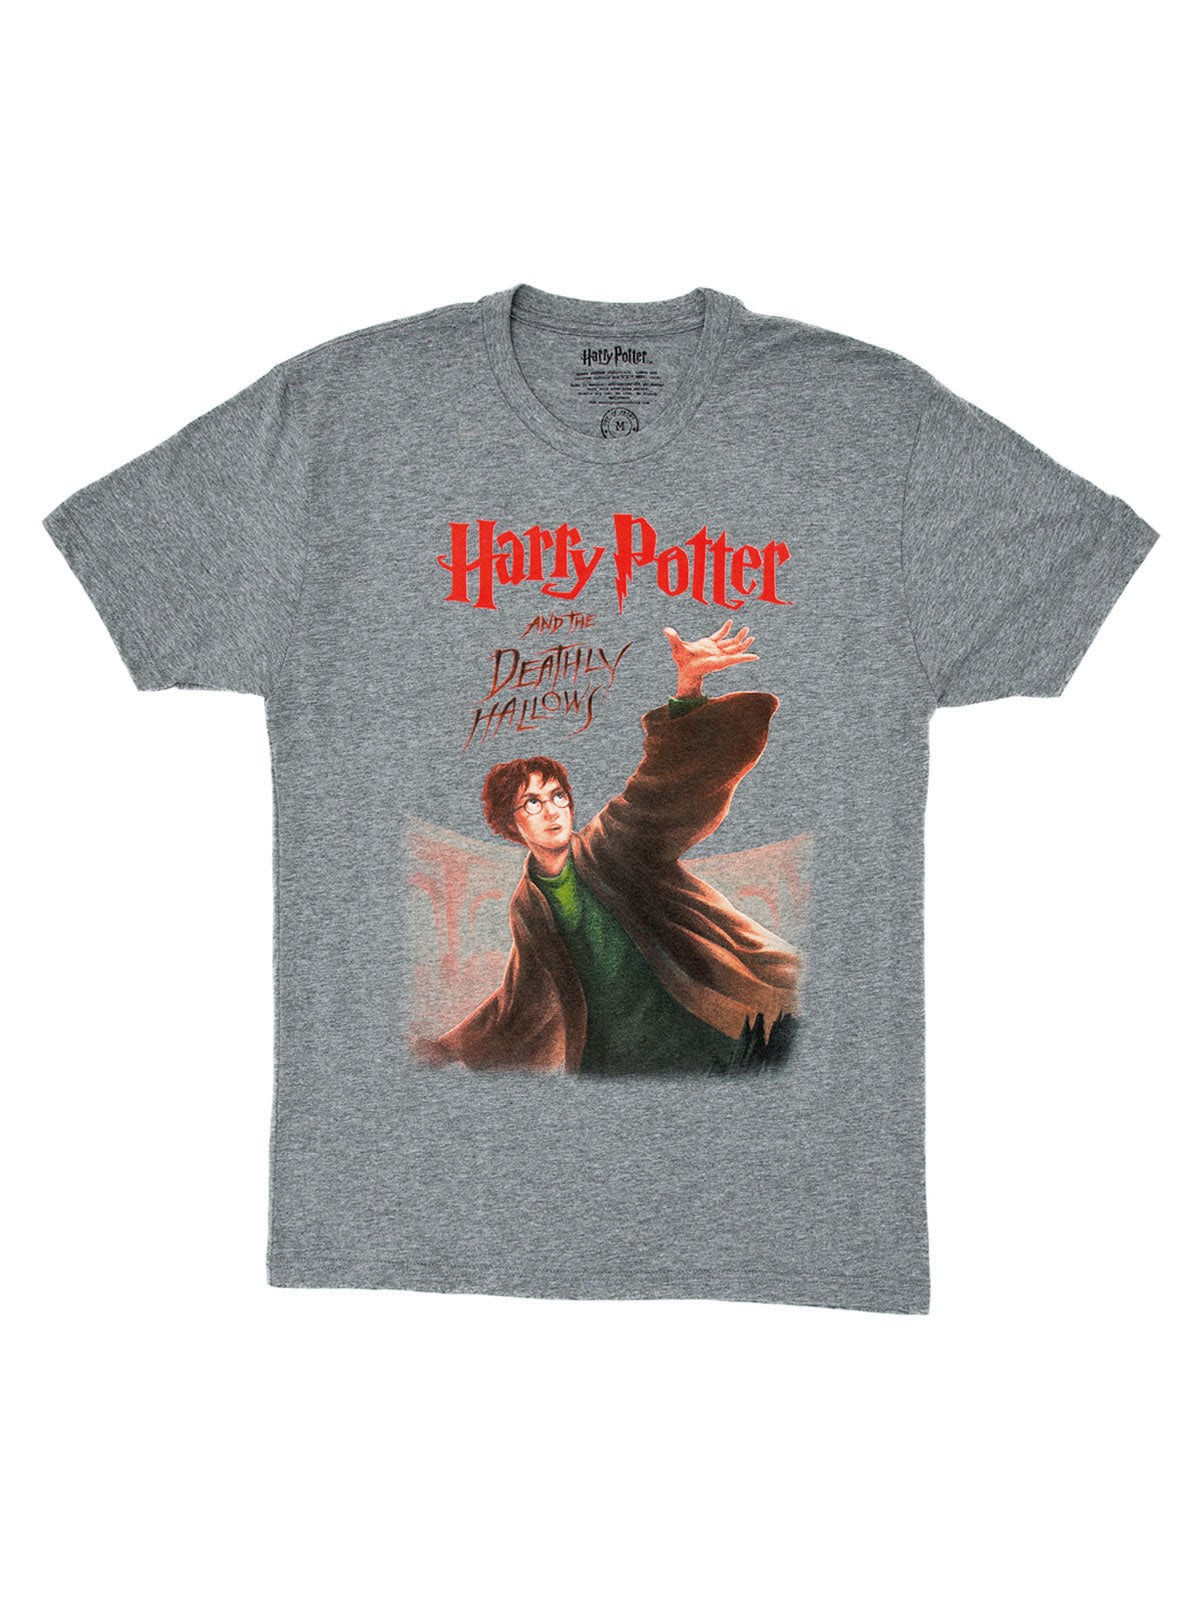 Spreadshirt Harry Potter The Deathly Hallows Teenagers Longsleeve Shirt